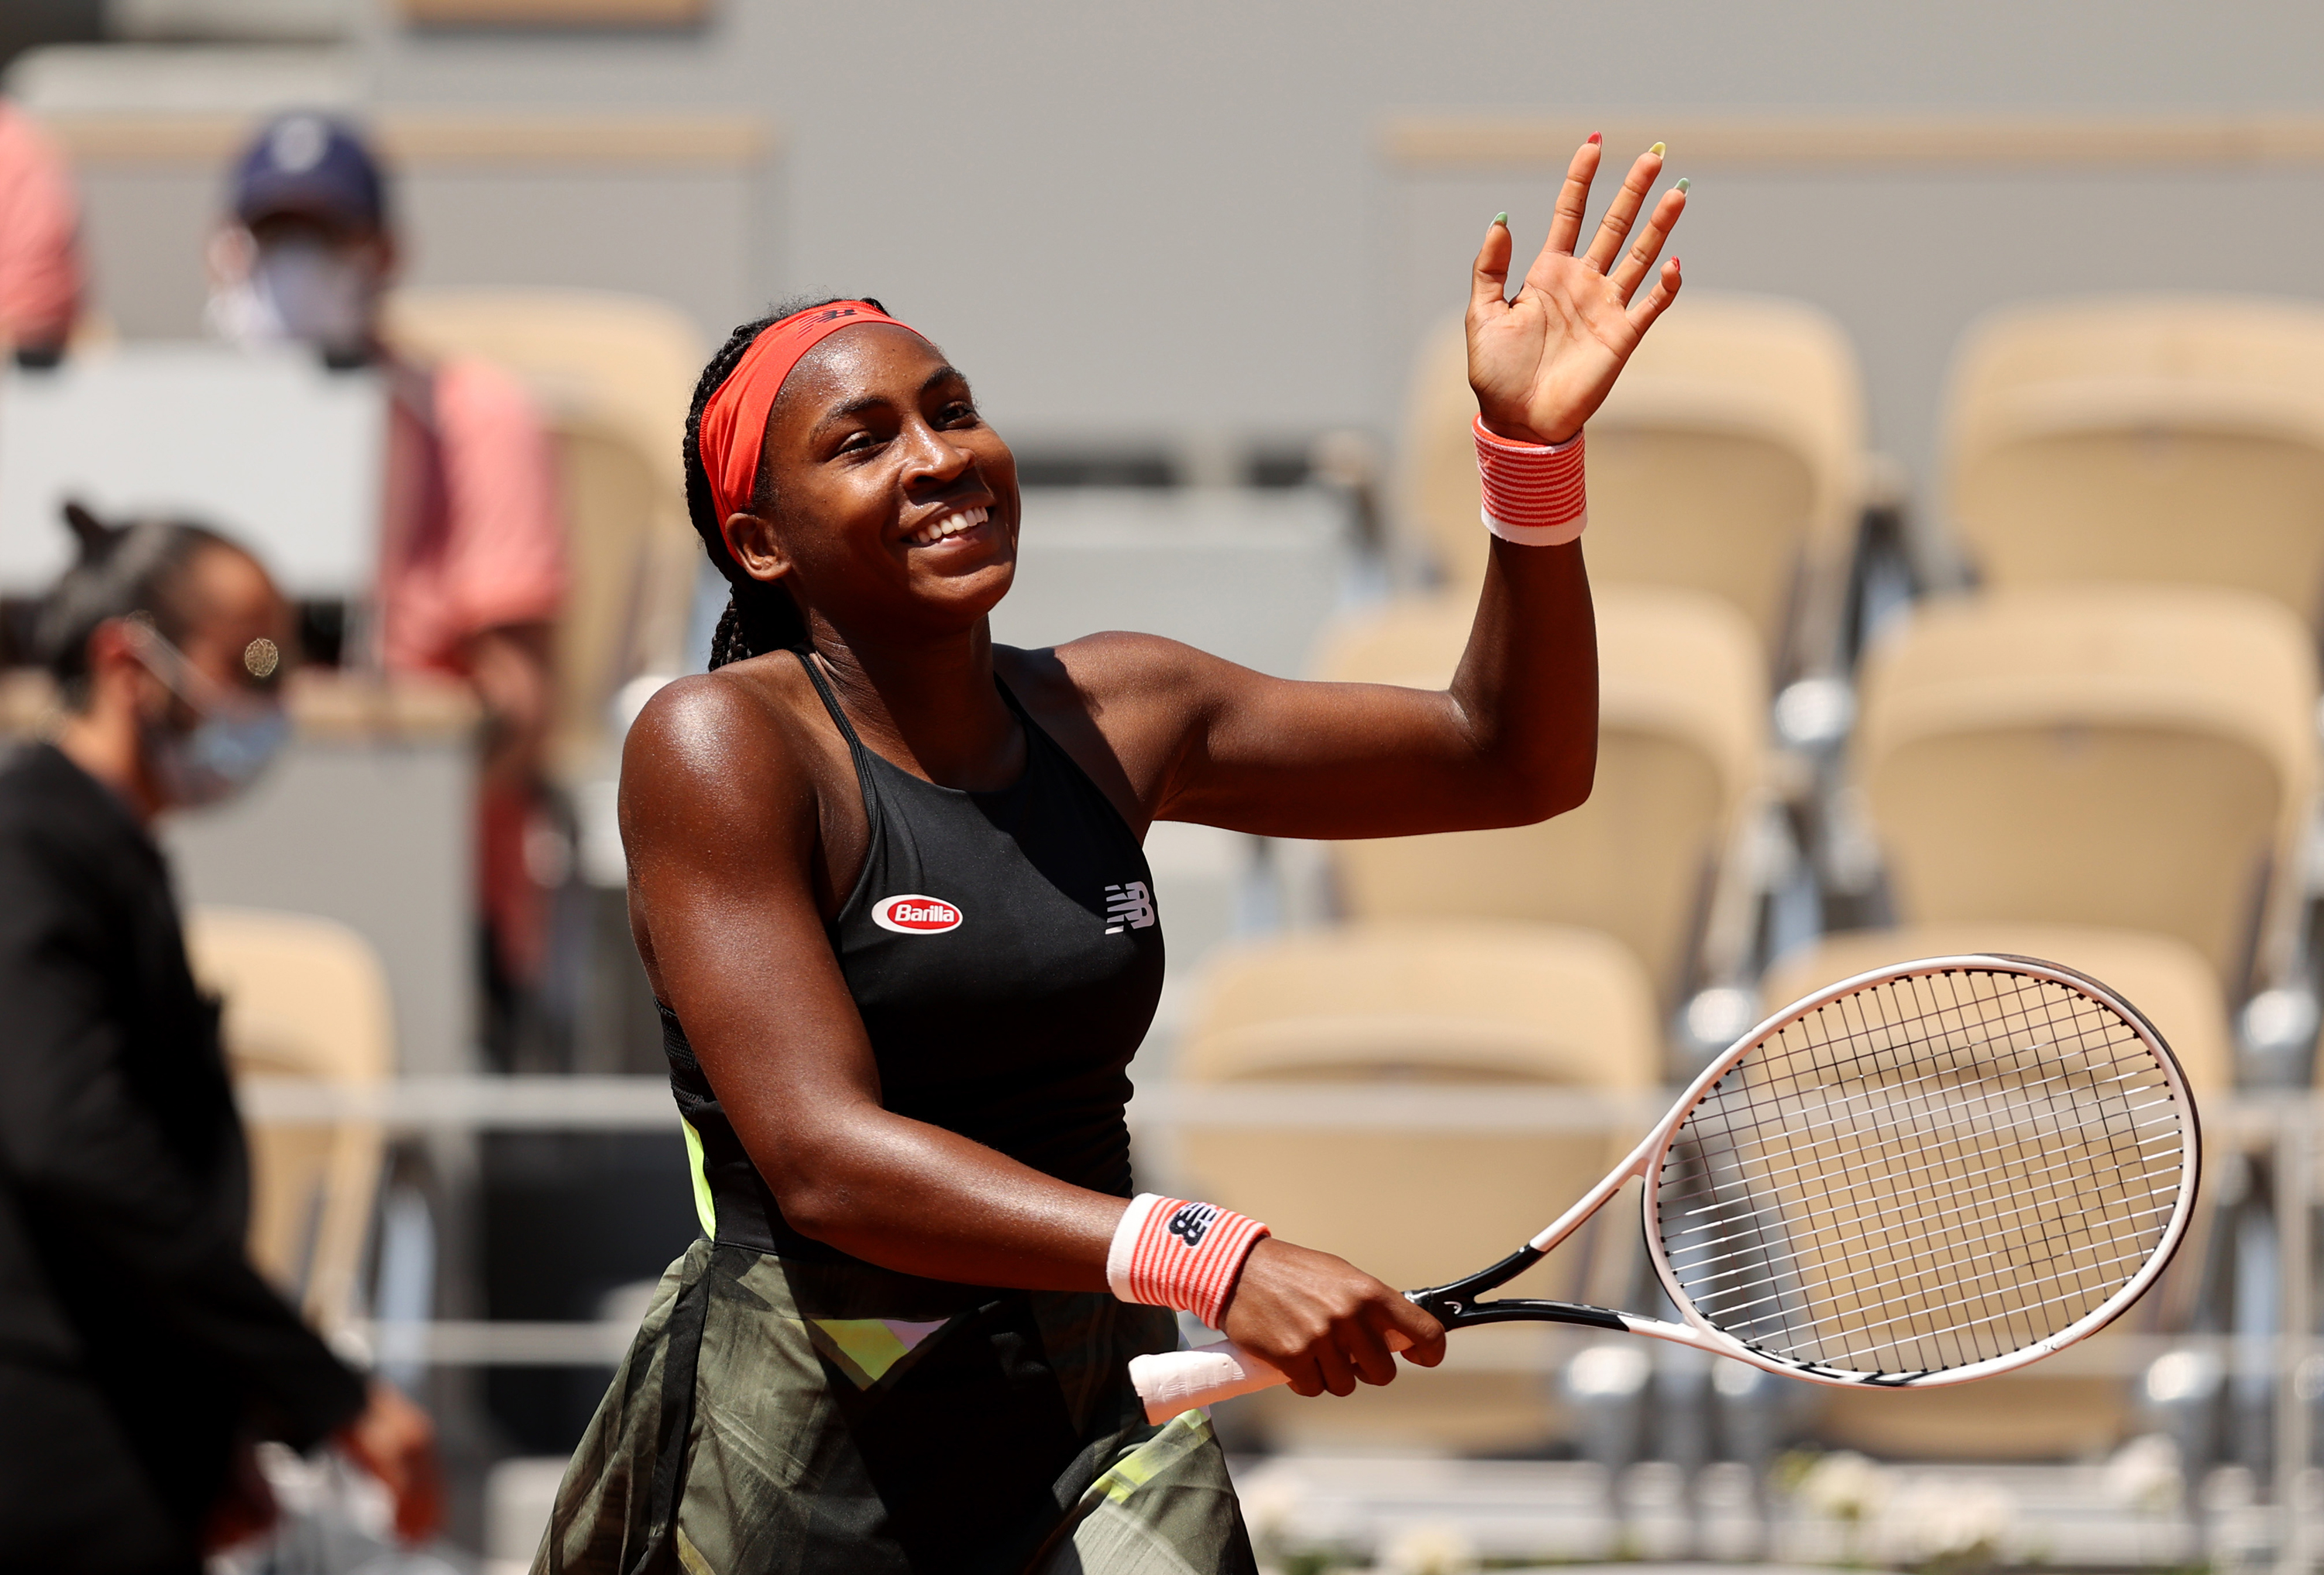 Coco Gauff becomes youngest woman to reach grand slam quarterfinal in 15 years at French Open